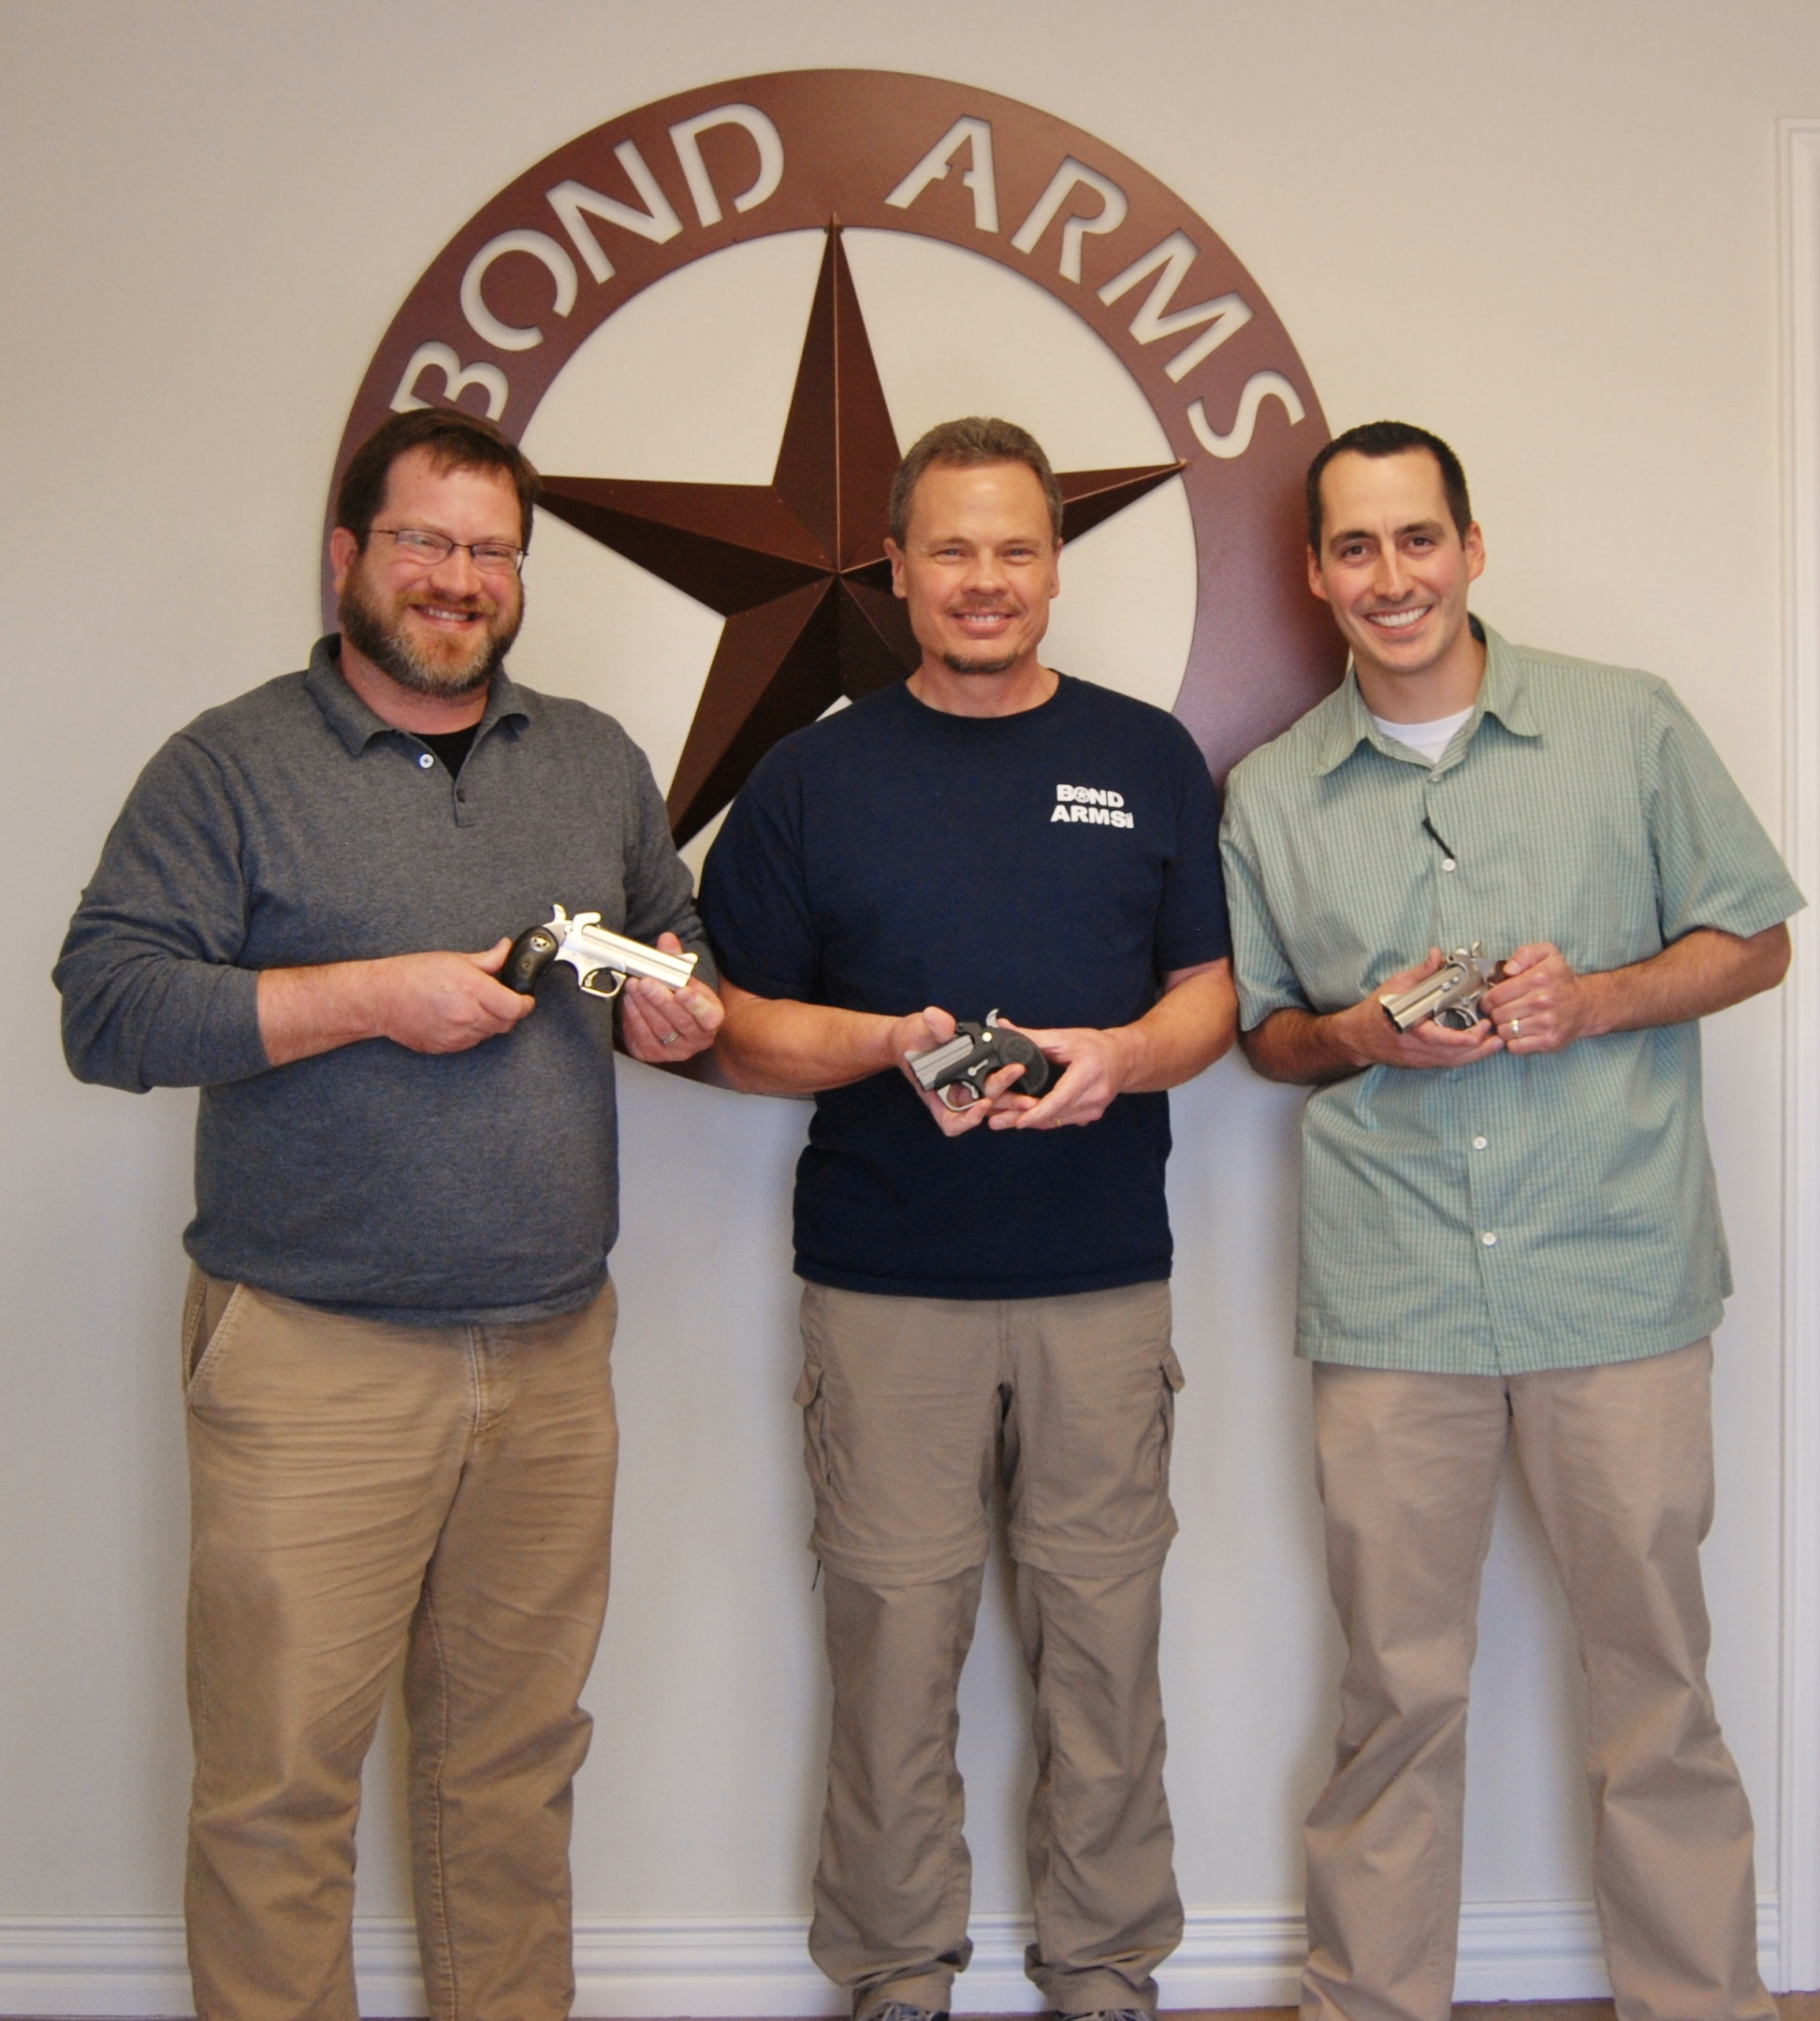 Bond Arms Factory Tour and Interview